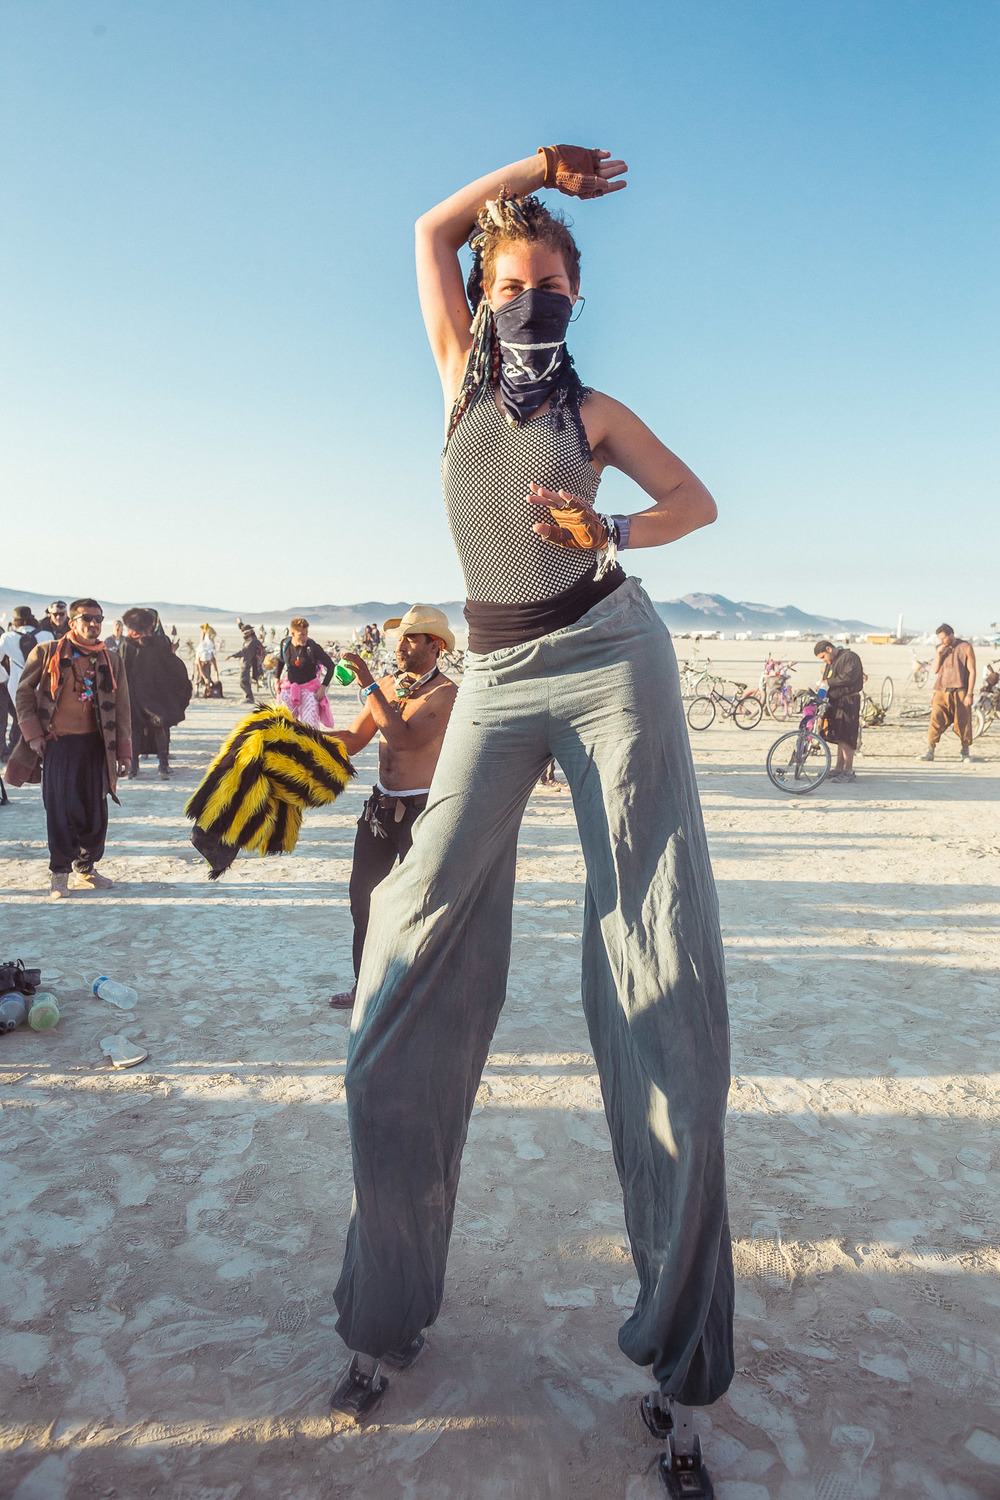 Burning_Man_2014_by_Cai_Griffin-148.jpg